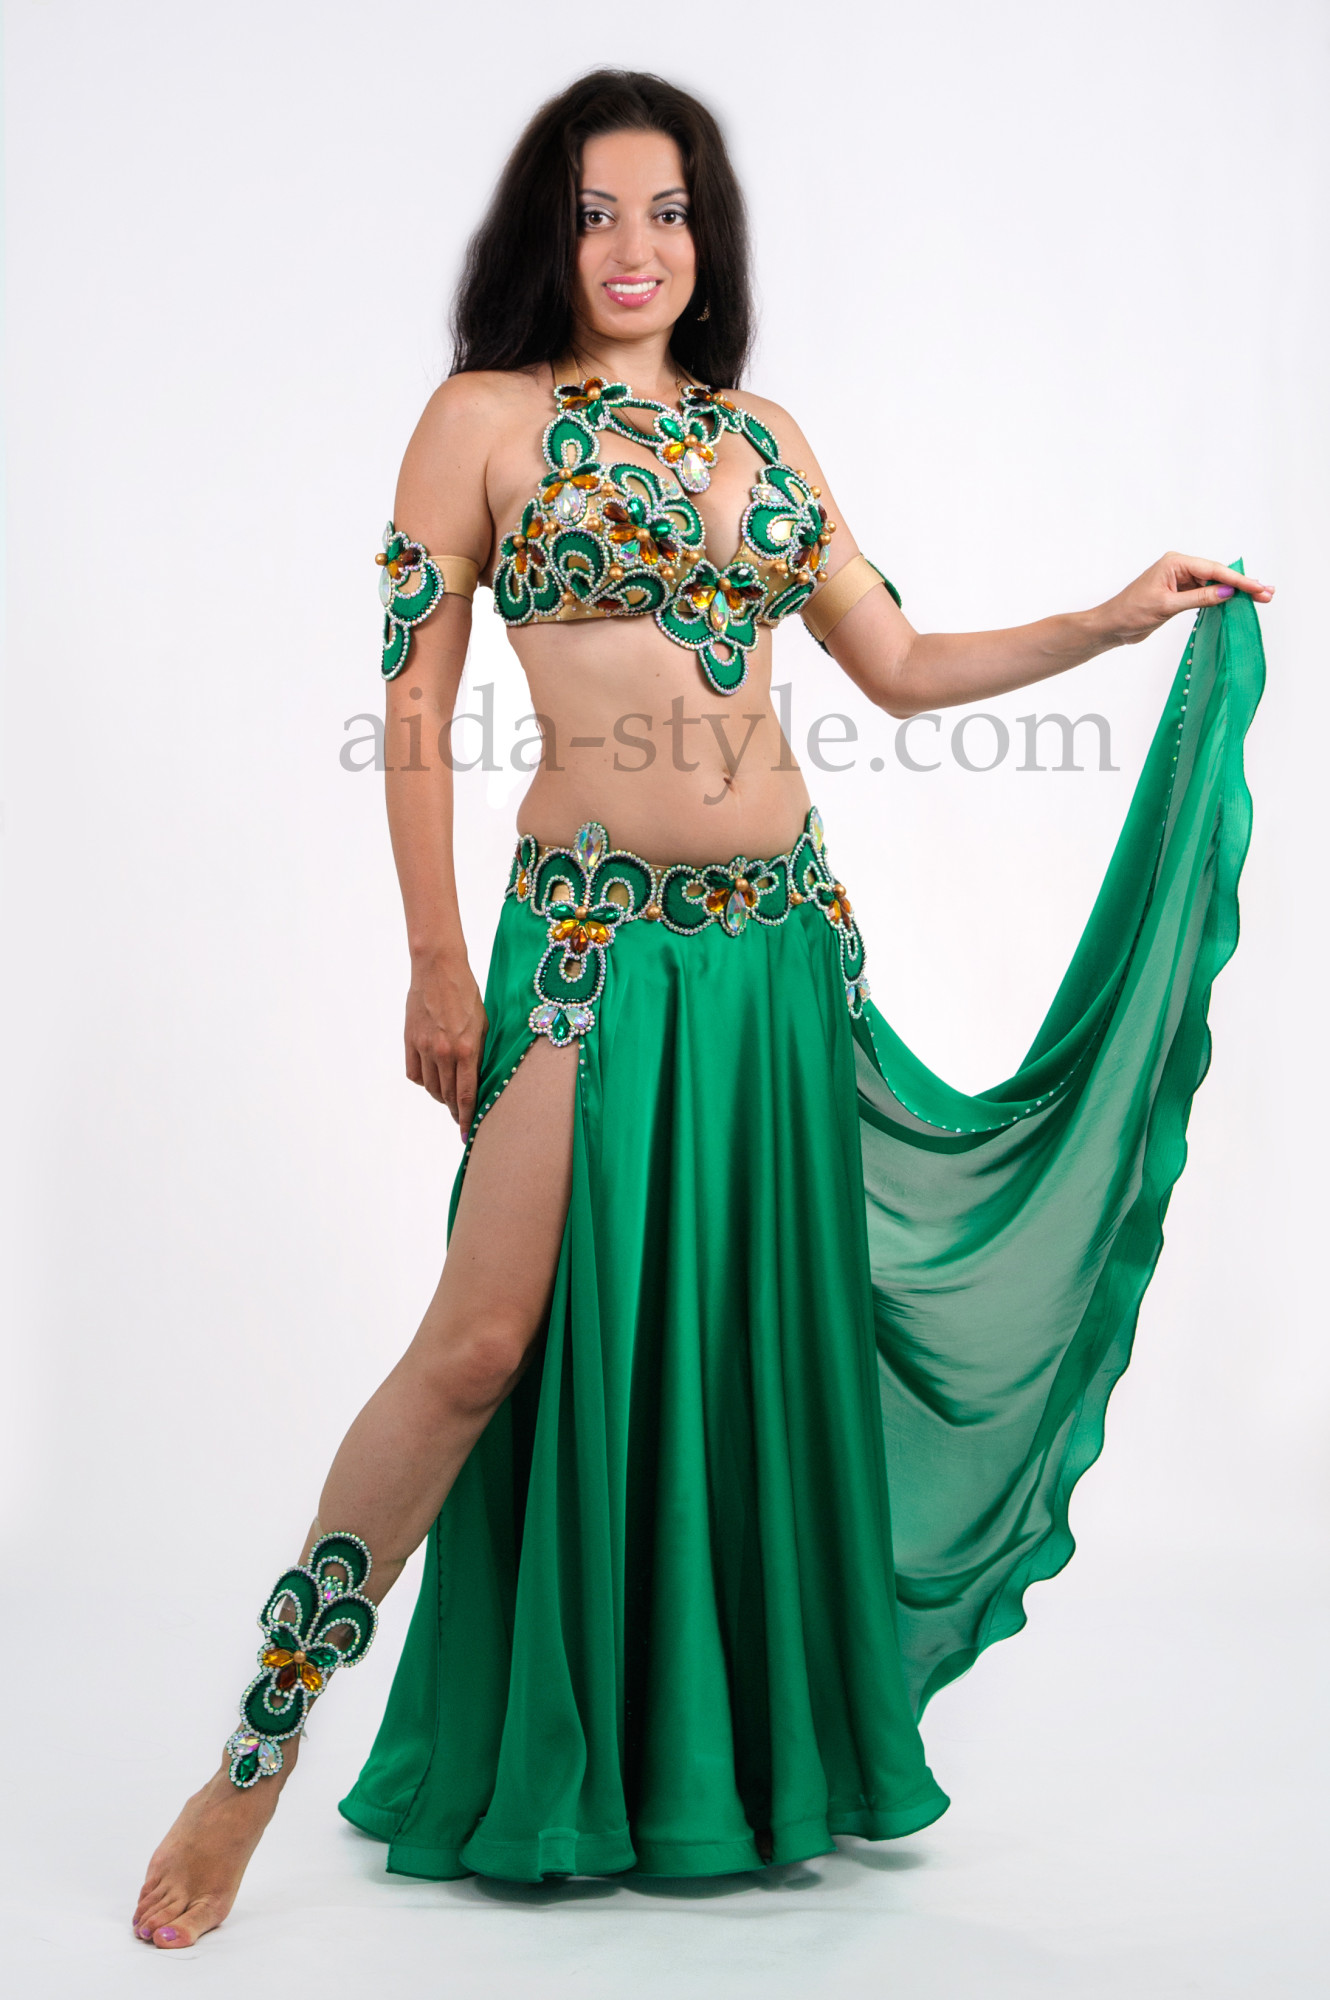 Green professional belly dance costume decorated with bright stones on the bra, belt and around the neck. The skirt has cuts on the roght and left sides